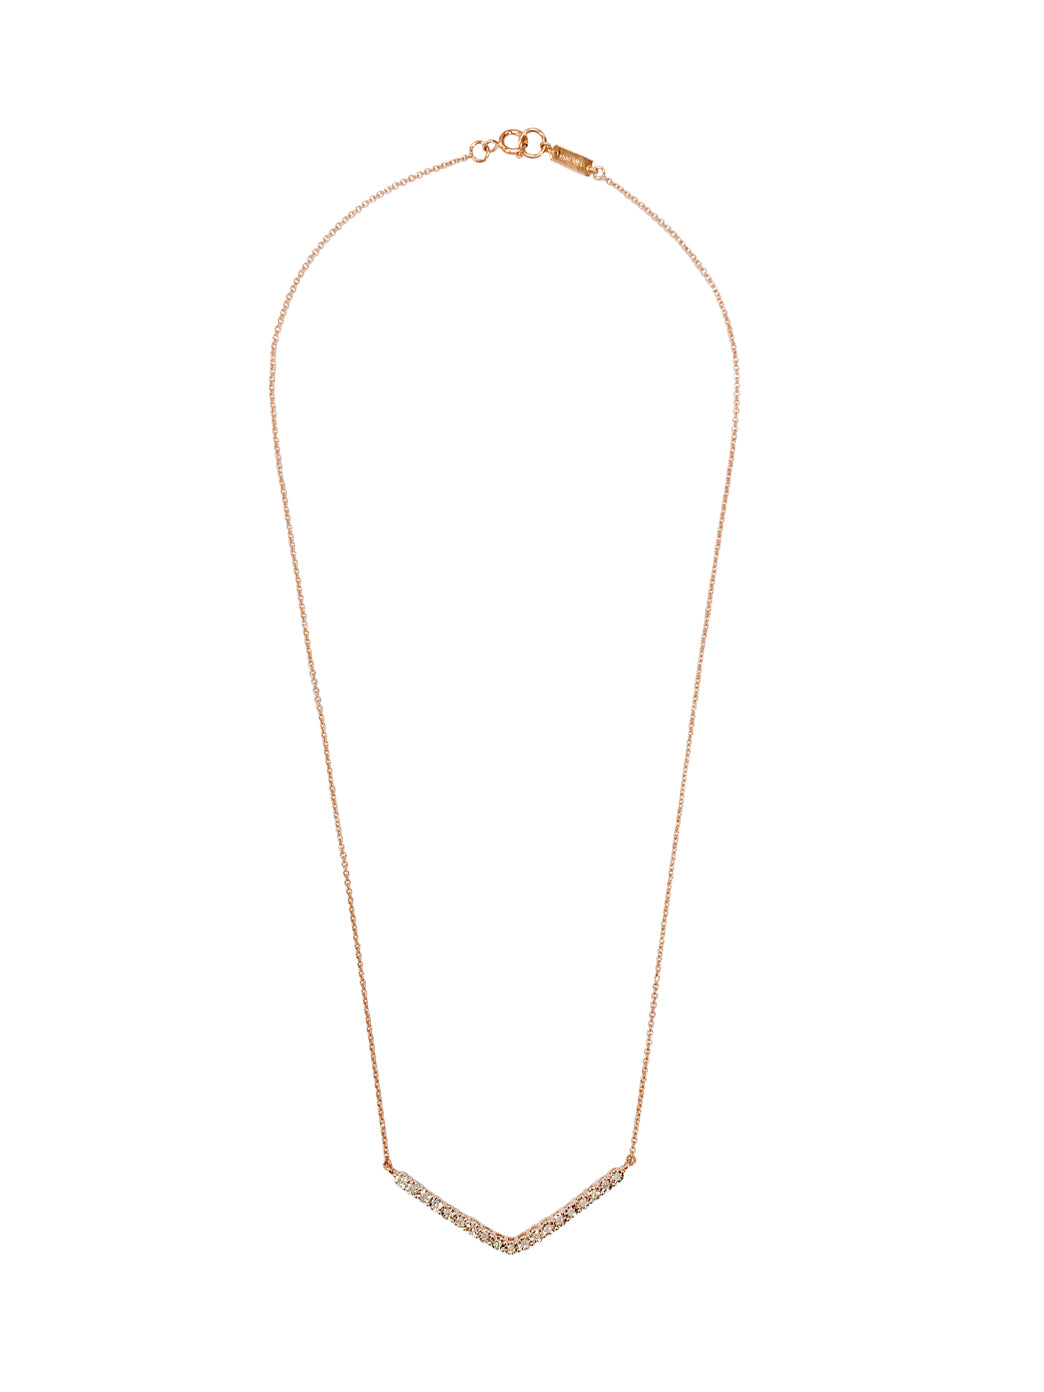 Fiorina Jewellery Rose Gold Diamond V Necklace